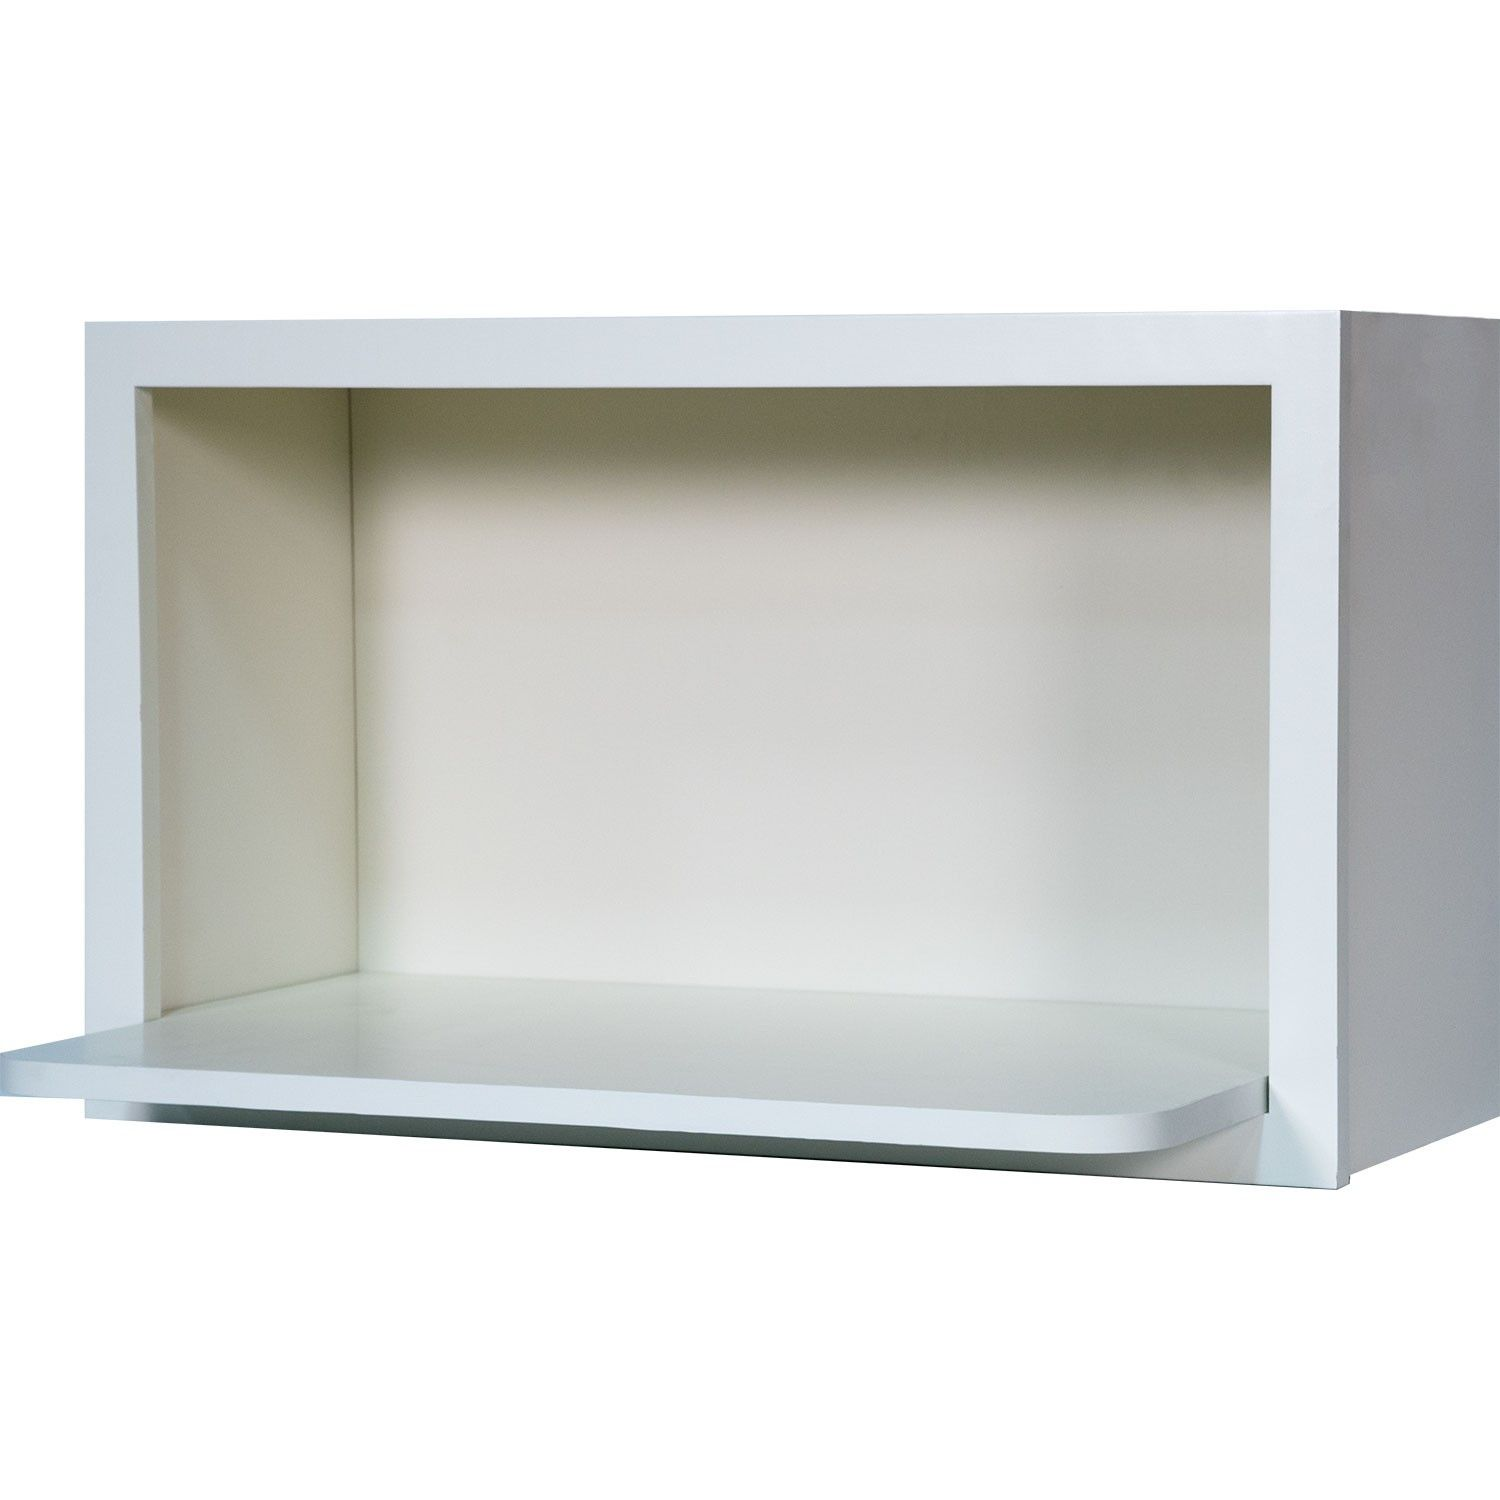 30 inch white kitchen cabinets 30 inch microwave shelf wall cabinet in shaker white 30 10197